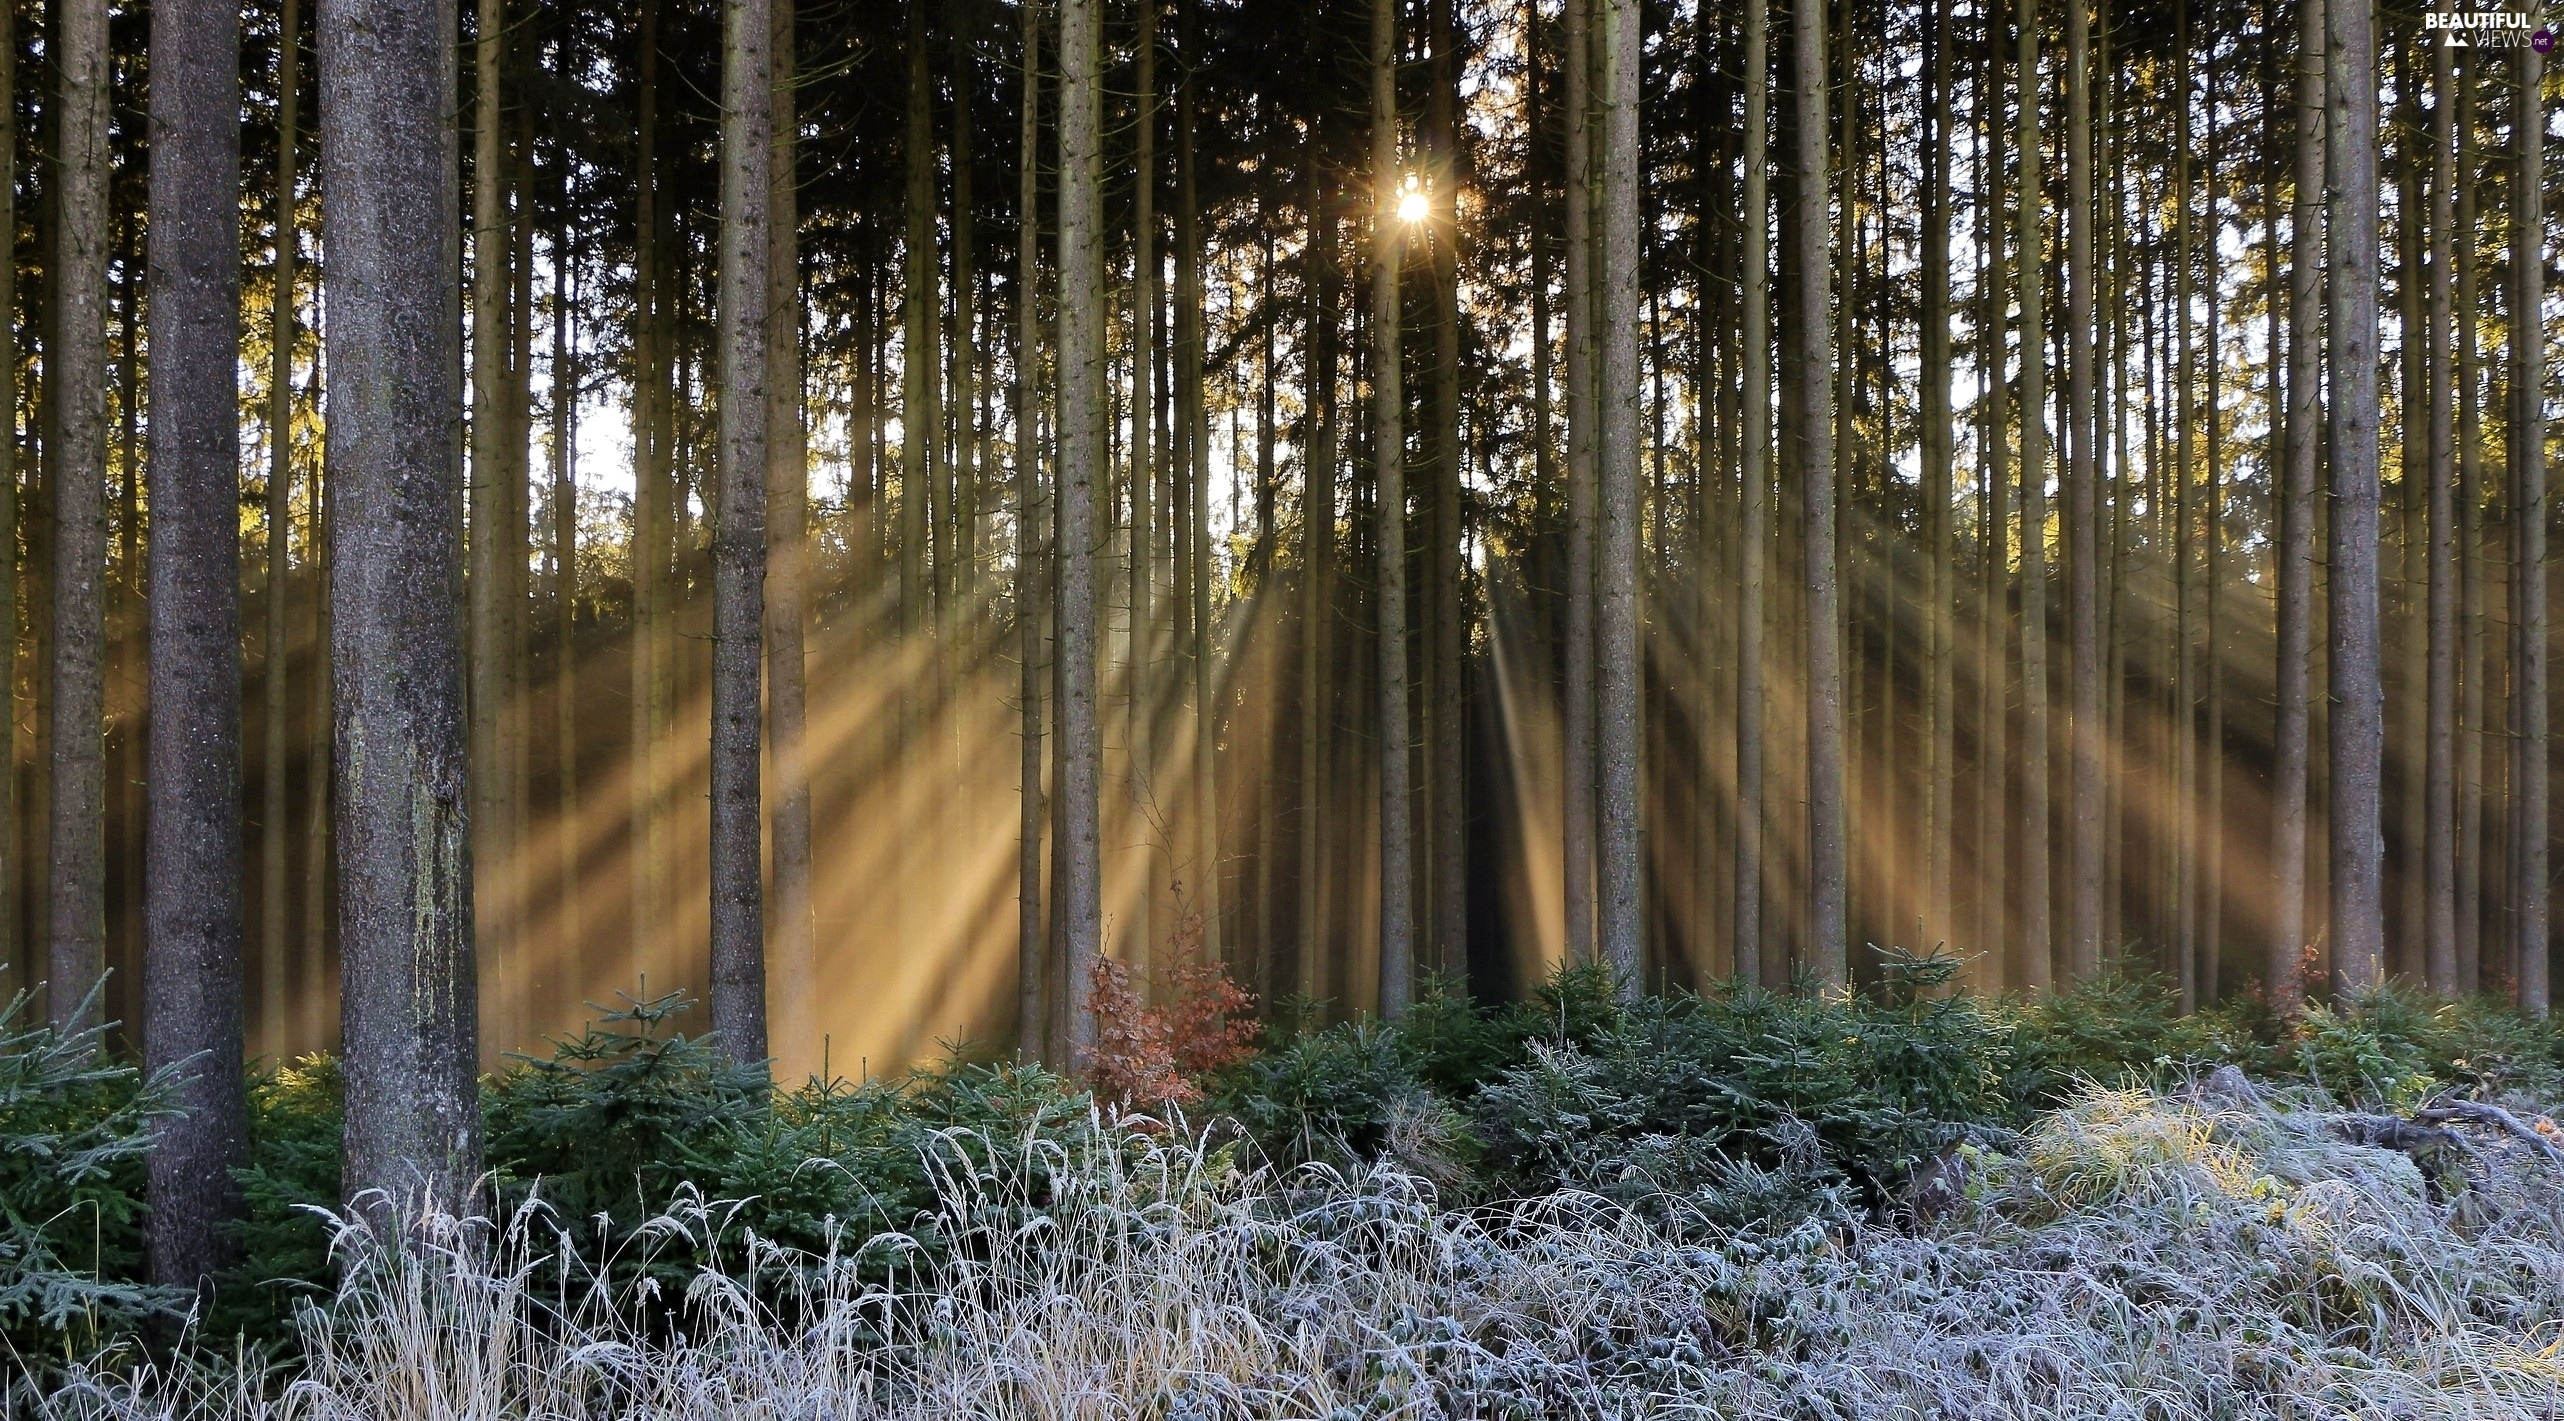 grass, forest, viewes, rays of the Sun, trees